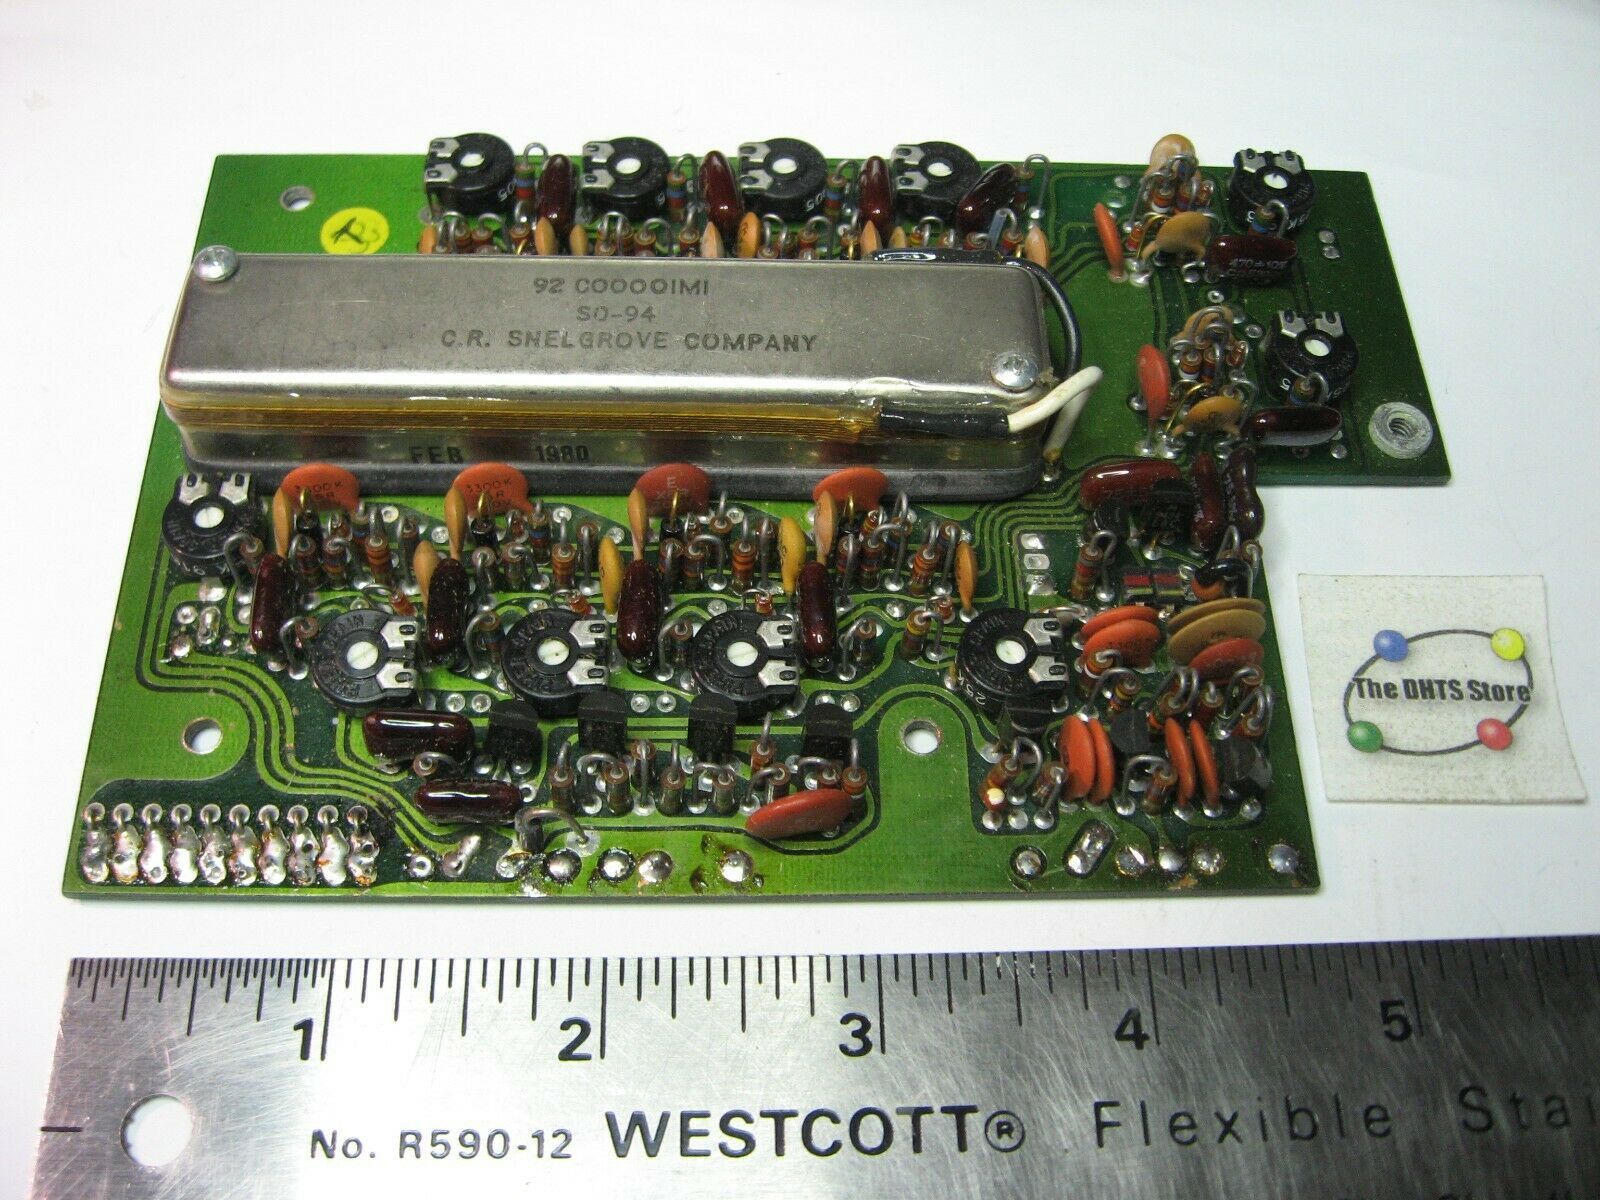 Primary image for 189M PCB Board Crystal Oven Snelgrove SO-94 92-C0000IMI Used Pull Untested Qty 1